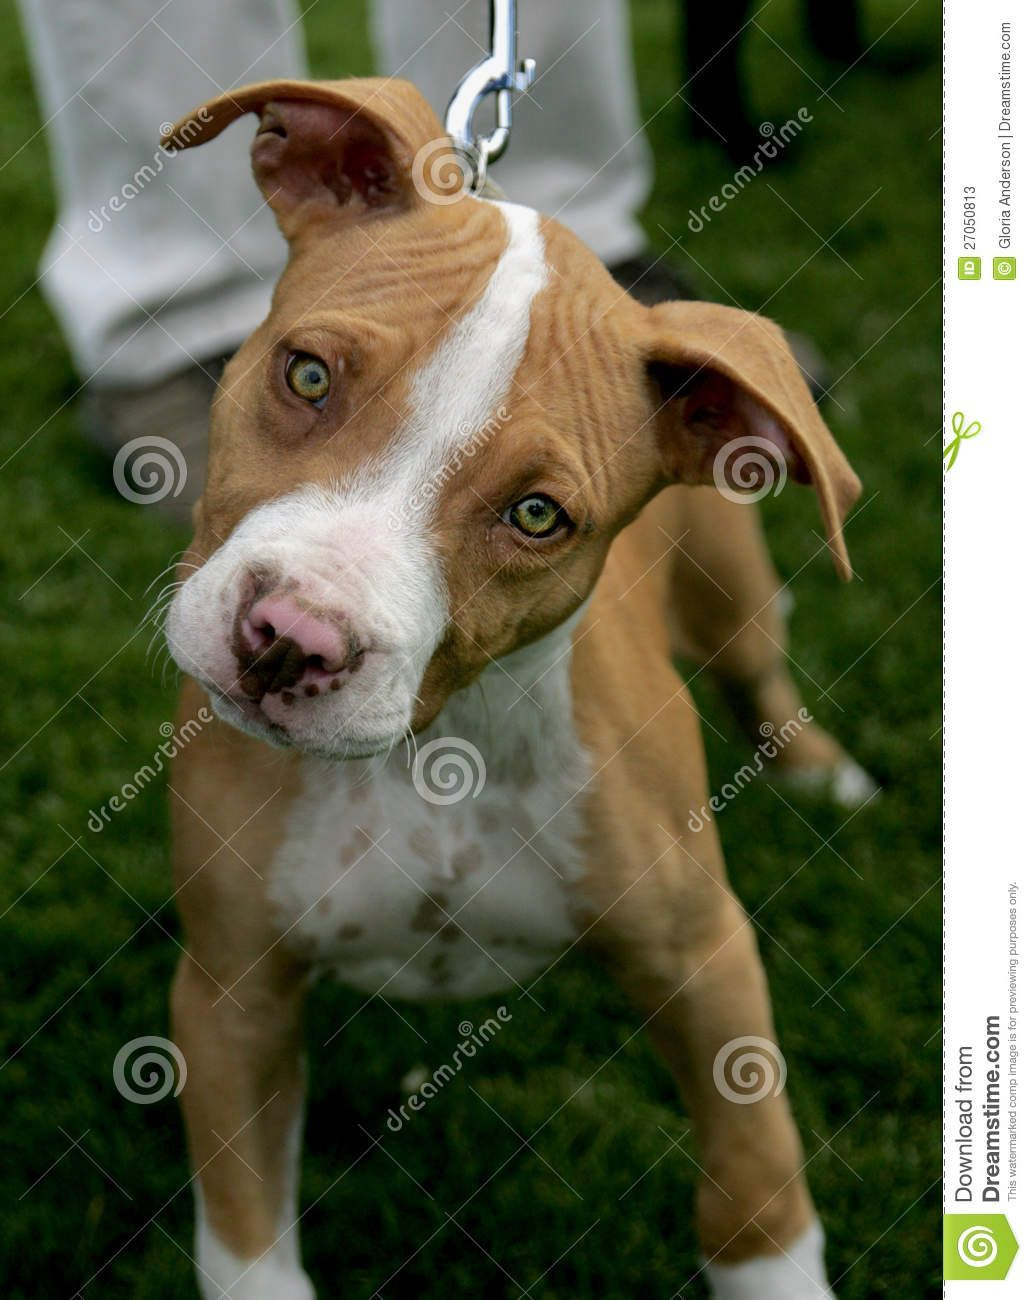 Pitbull dog puppies cute